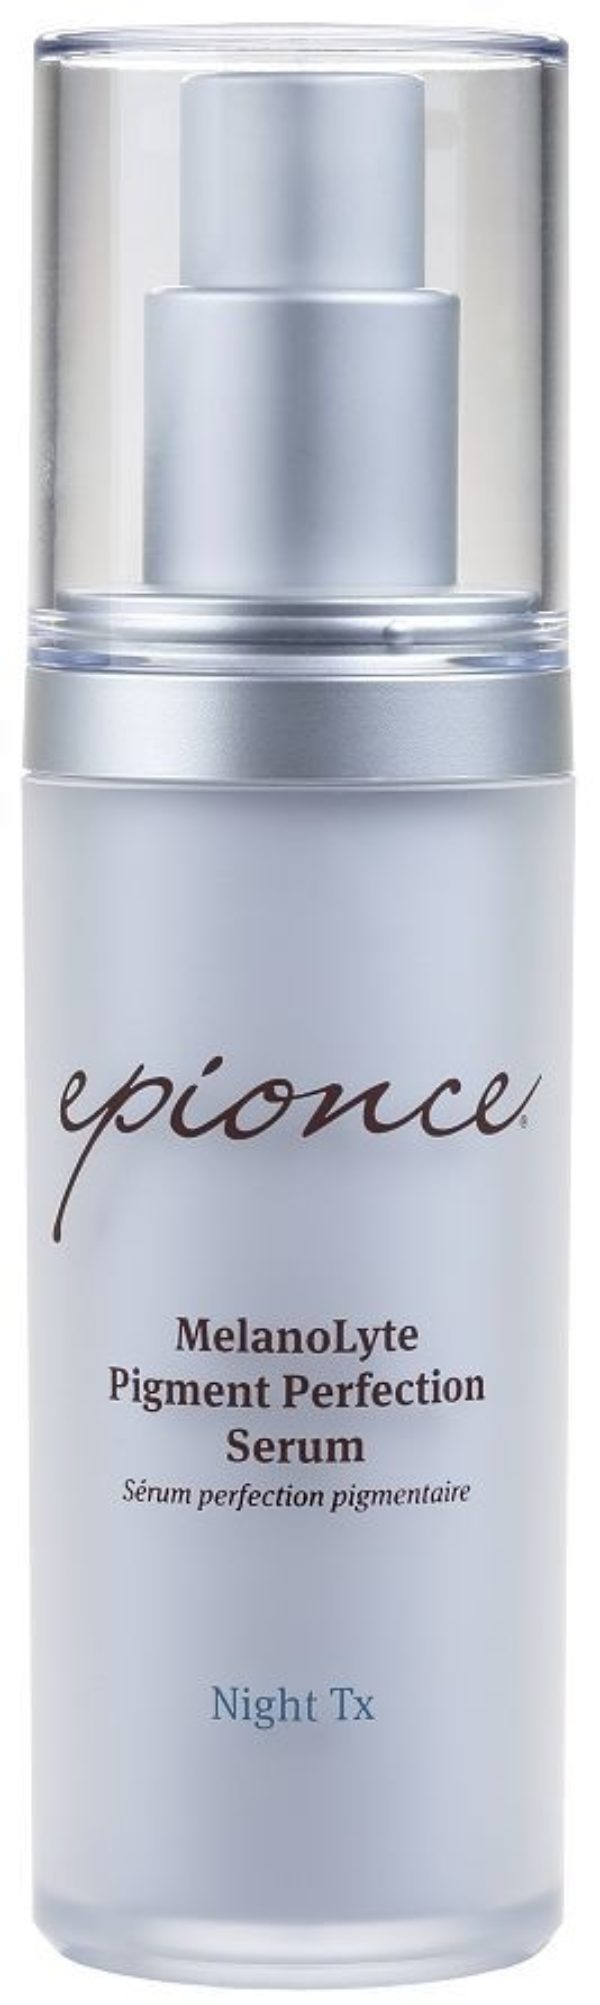 Epionce MelanoLyte Pigment Perfection Serum